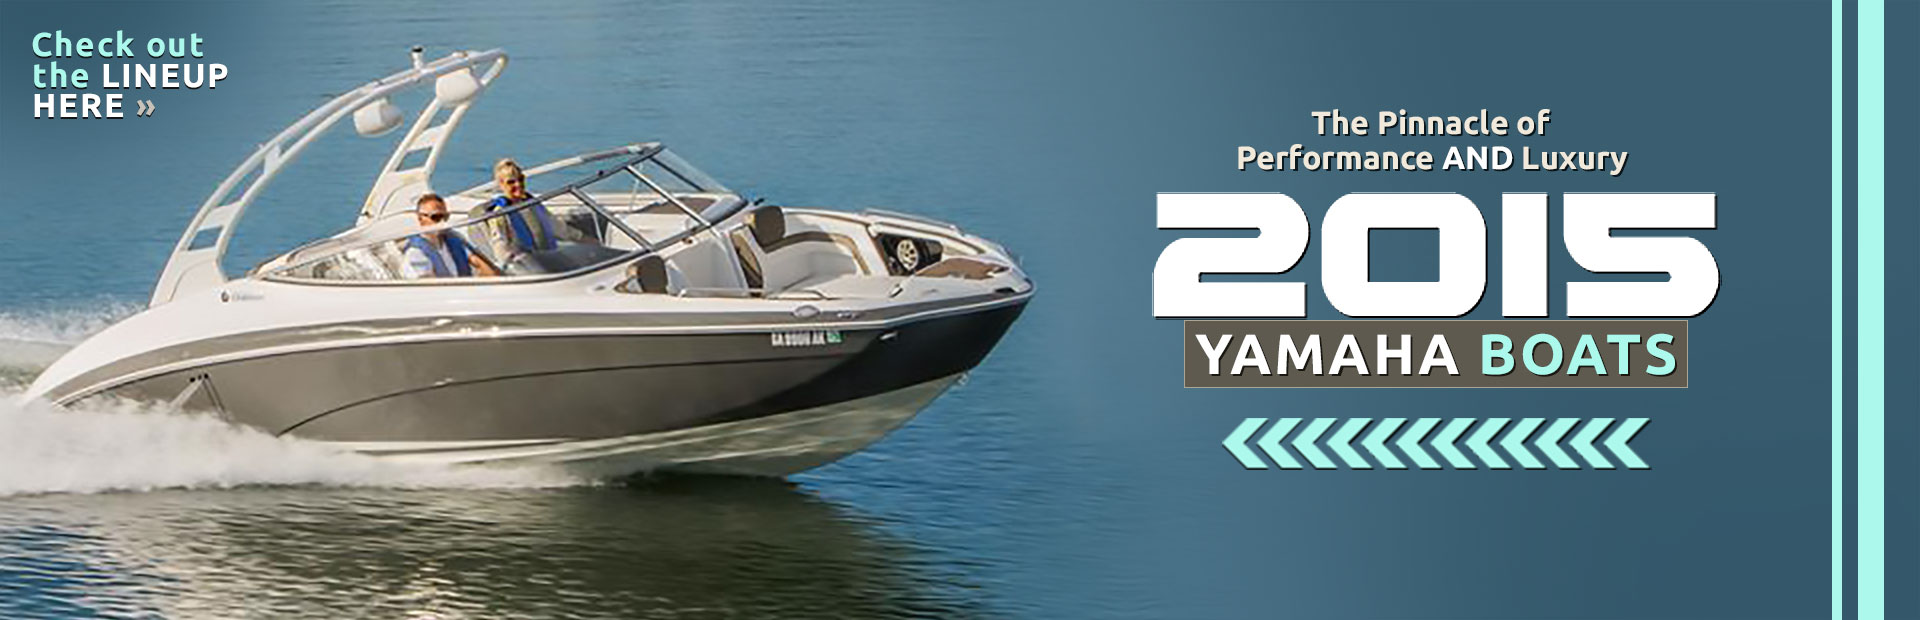 2015 Yamaha Boats: Click here to view the lineup.